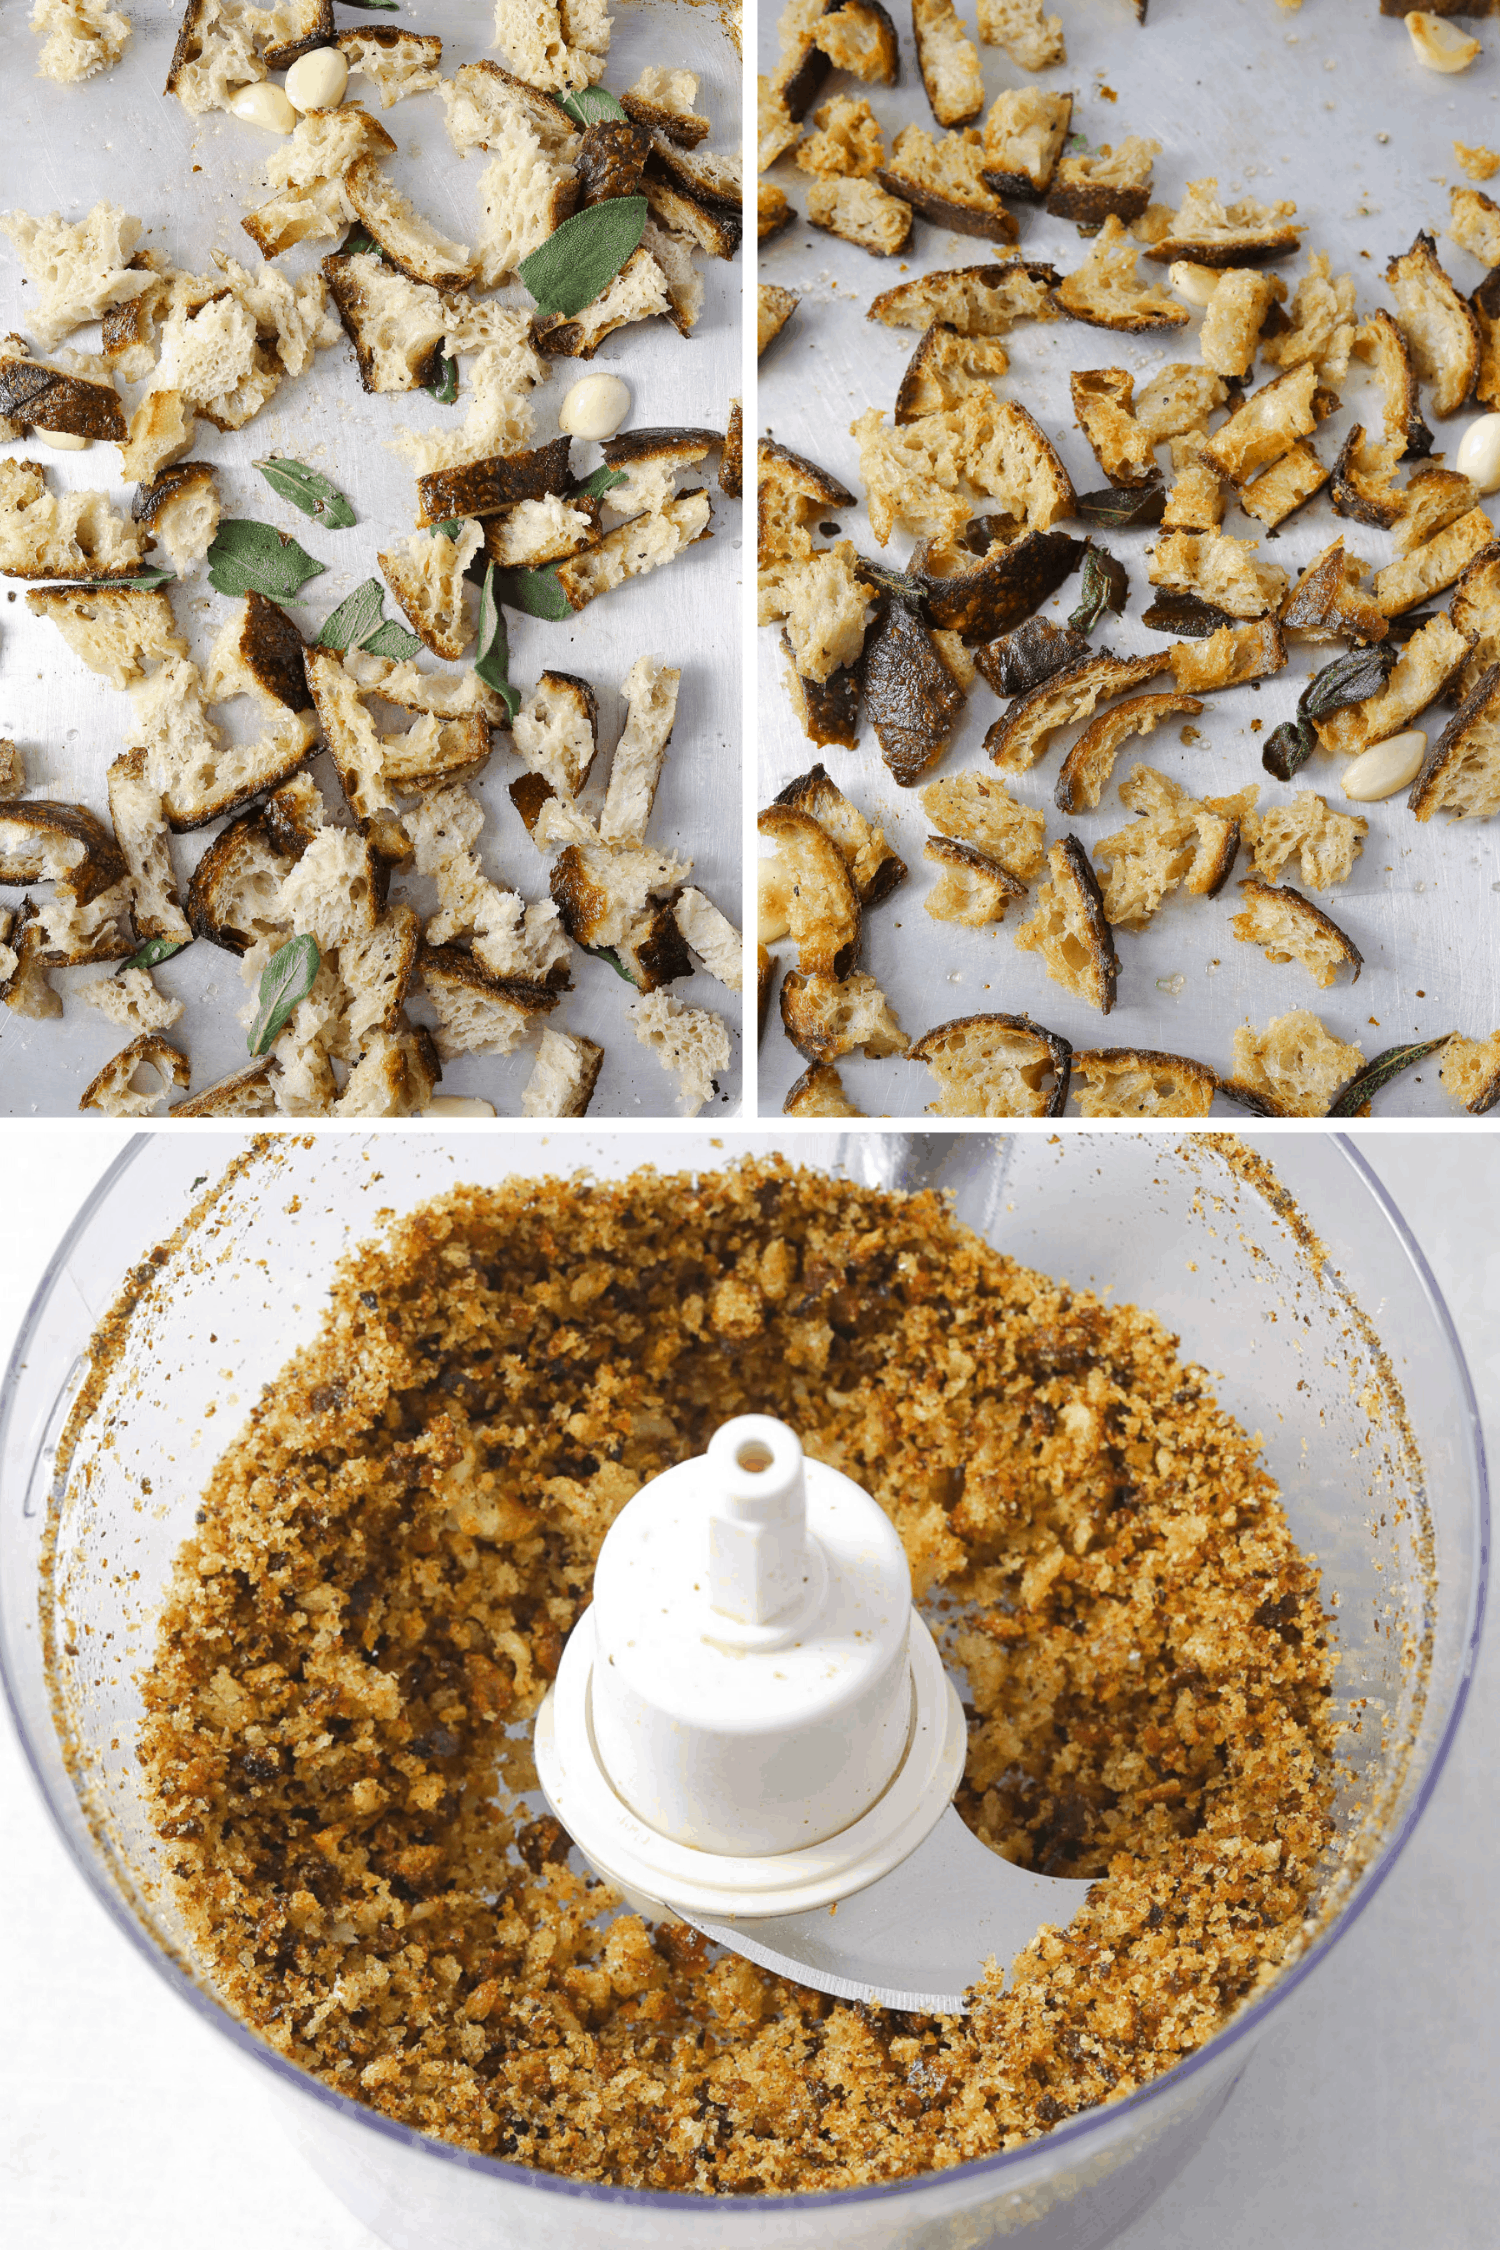 a collage of three photos: raw bread on a baking tray, toasted bread on a baking tray and bread crumbs in a food processor